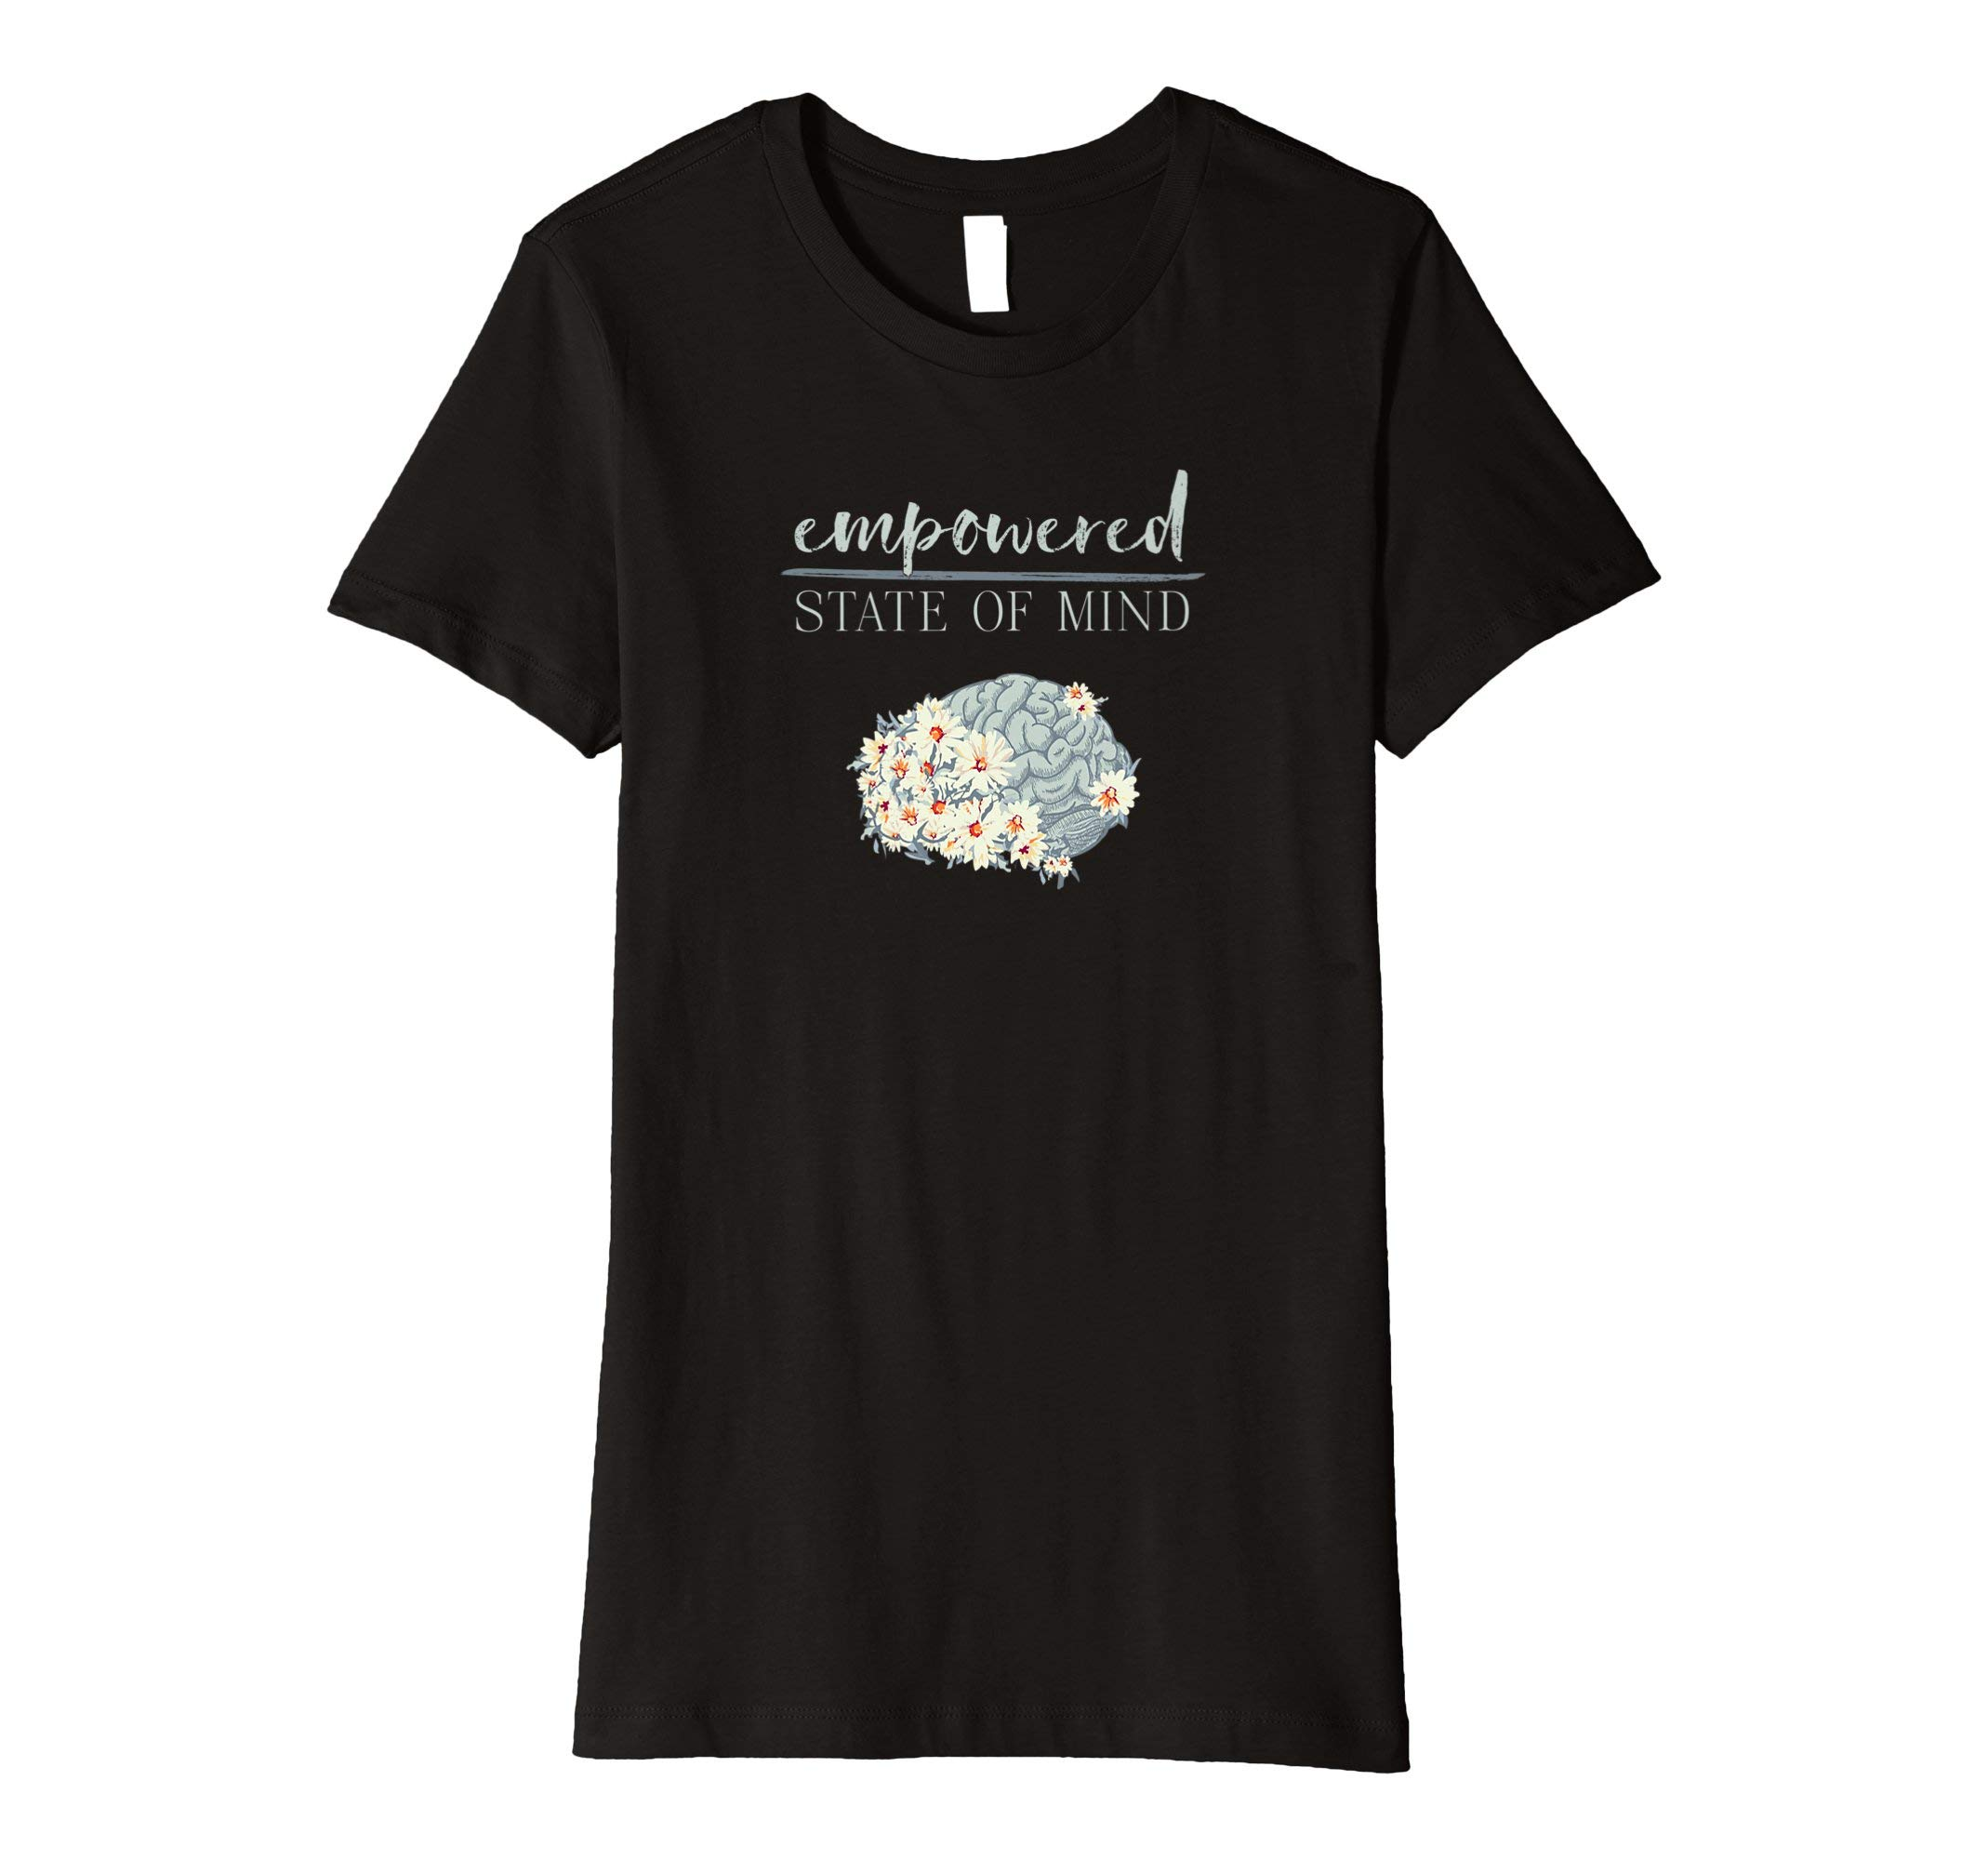 Empowered State of Mind T-Shirt